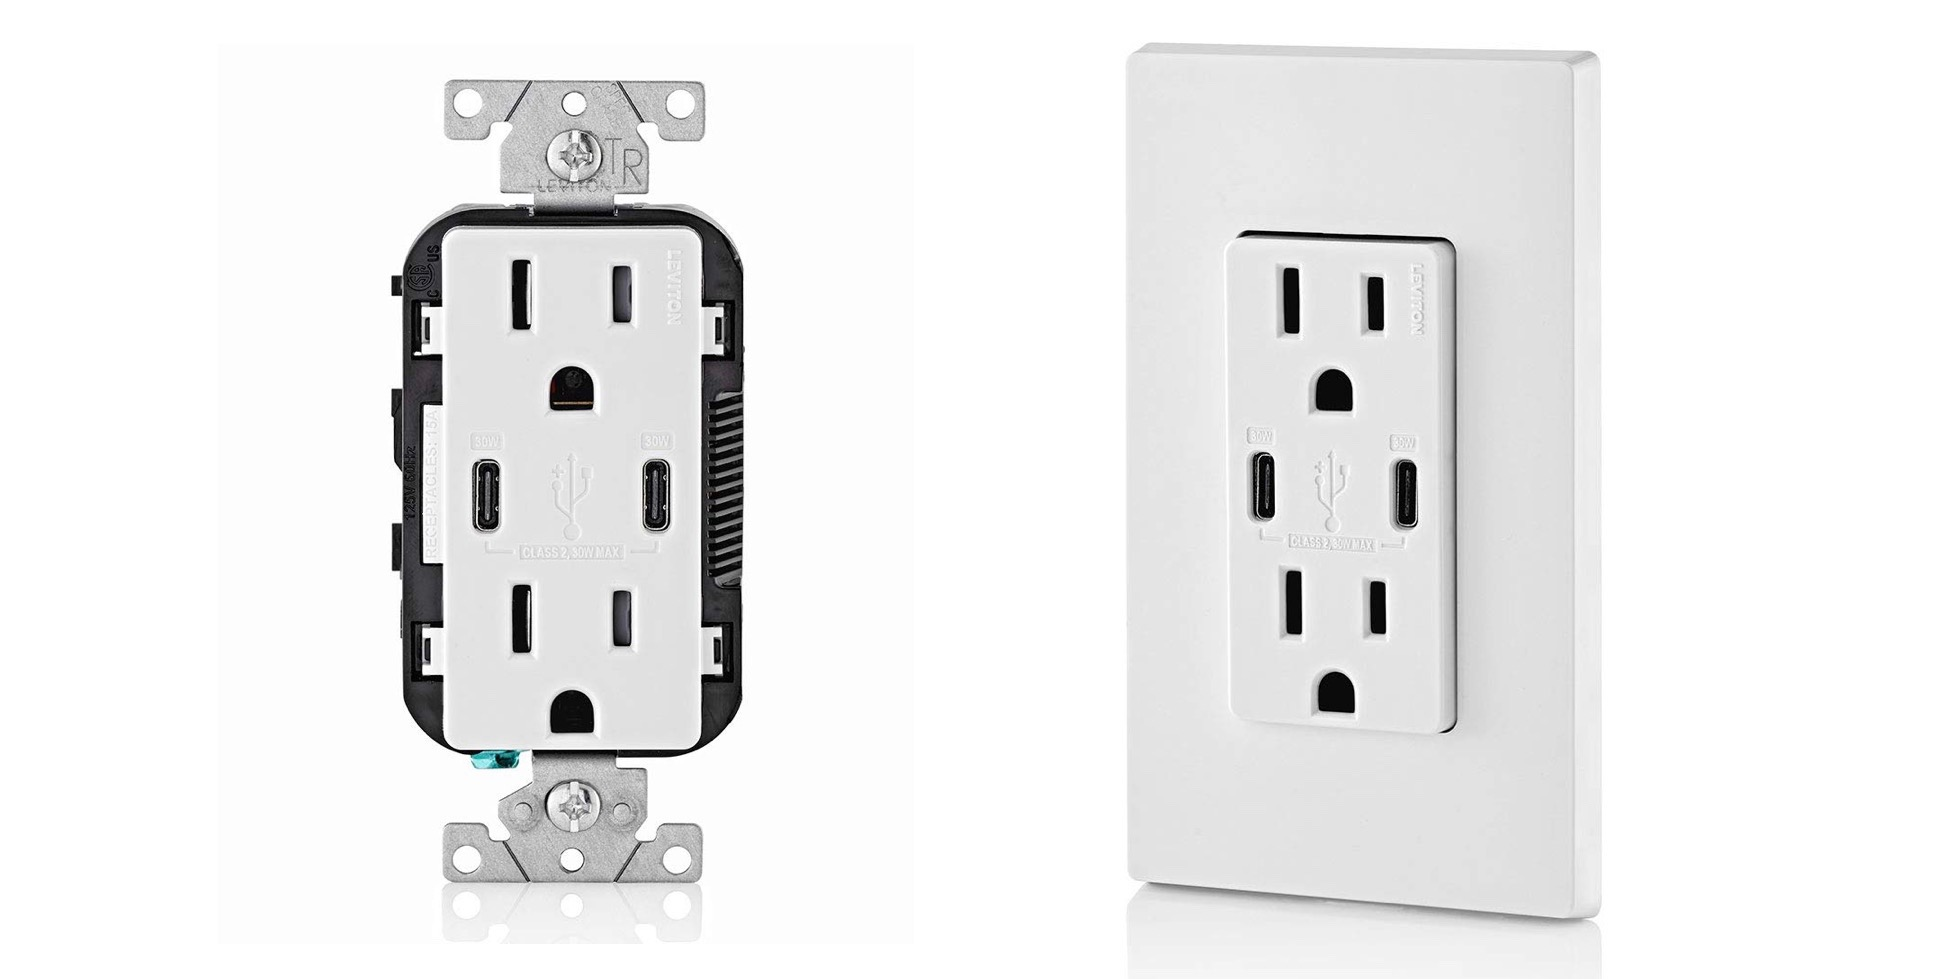 Leviton Usb C Wall Outlet With 30w Per Port Now Available